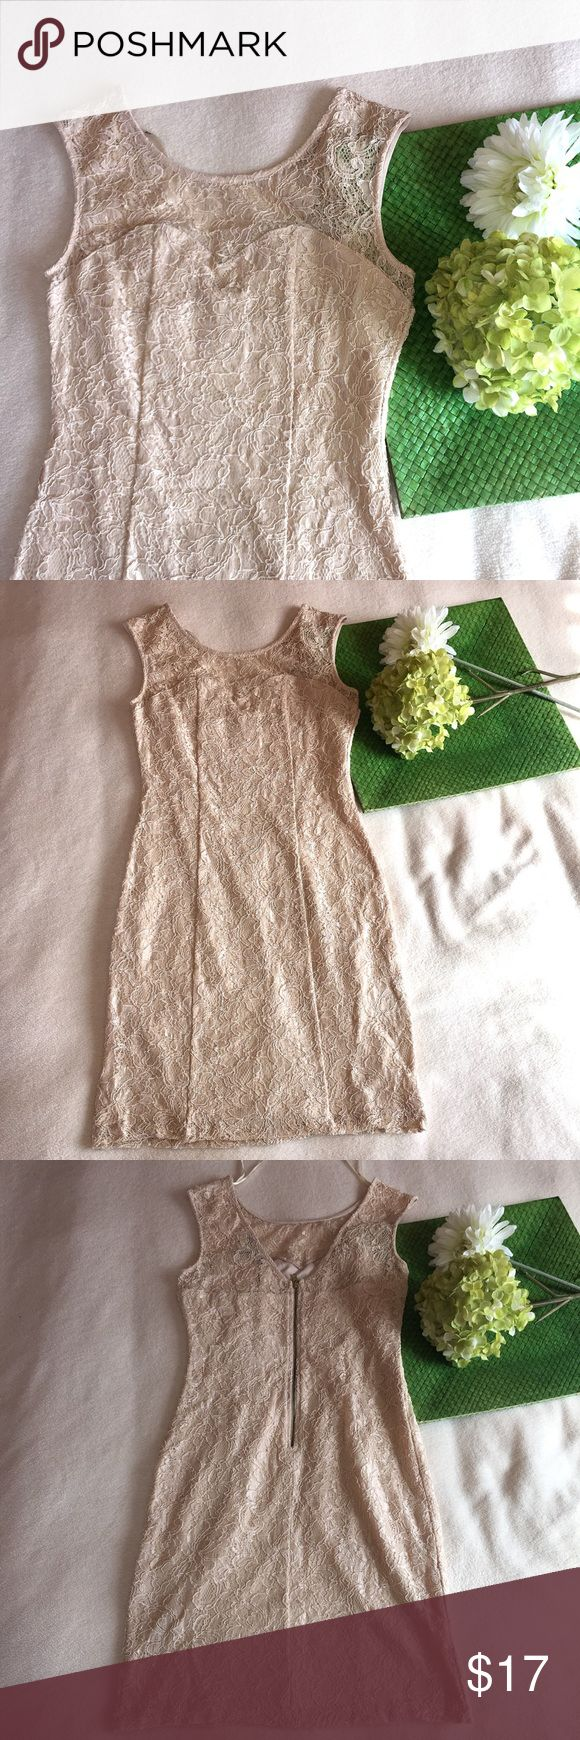 F21 | zip back full lace nude bodycon dress Offers welcomed :) Forever 21 Dresses Mini